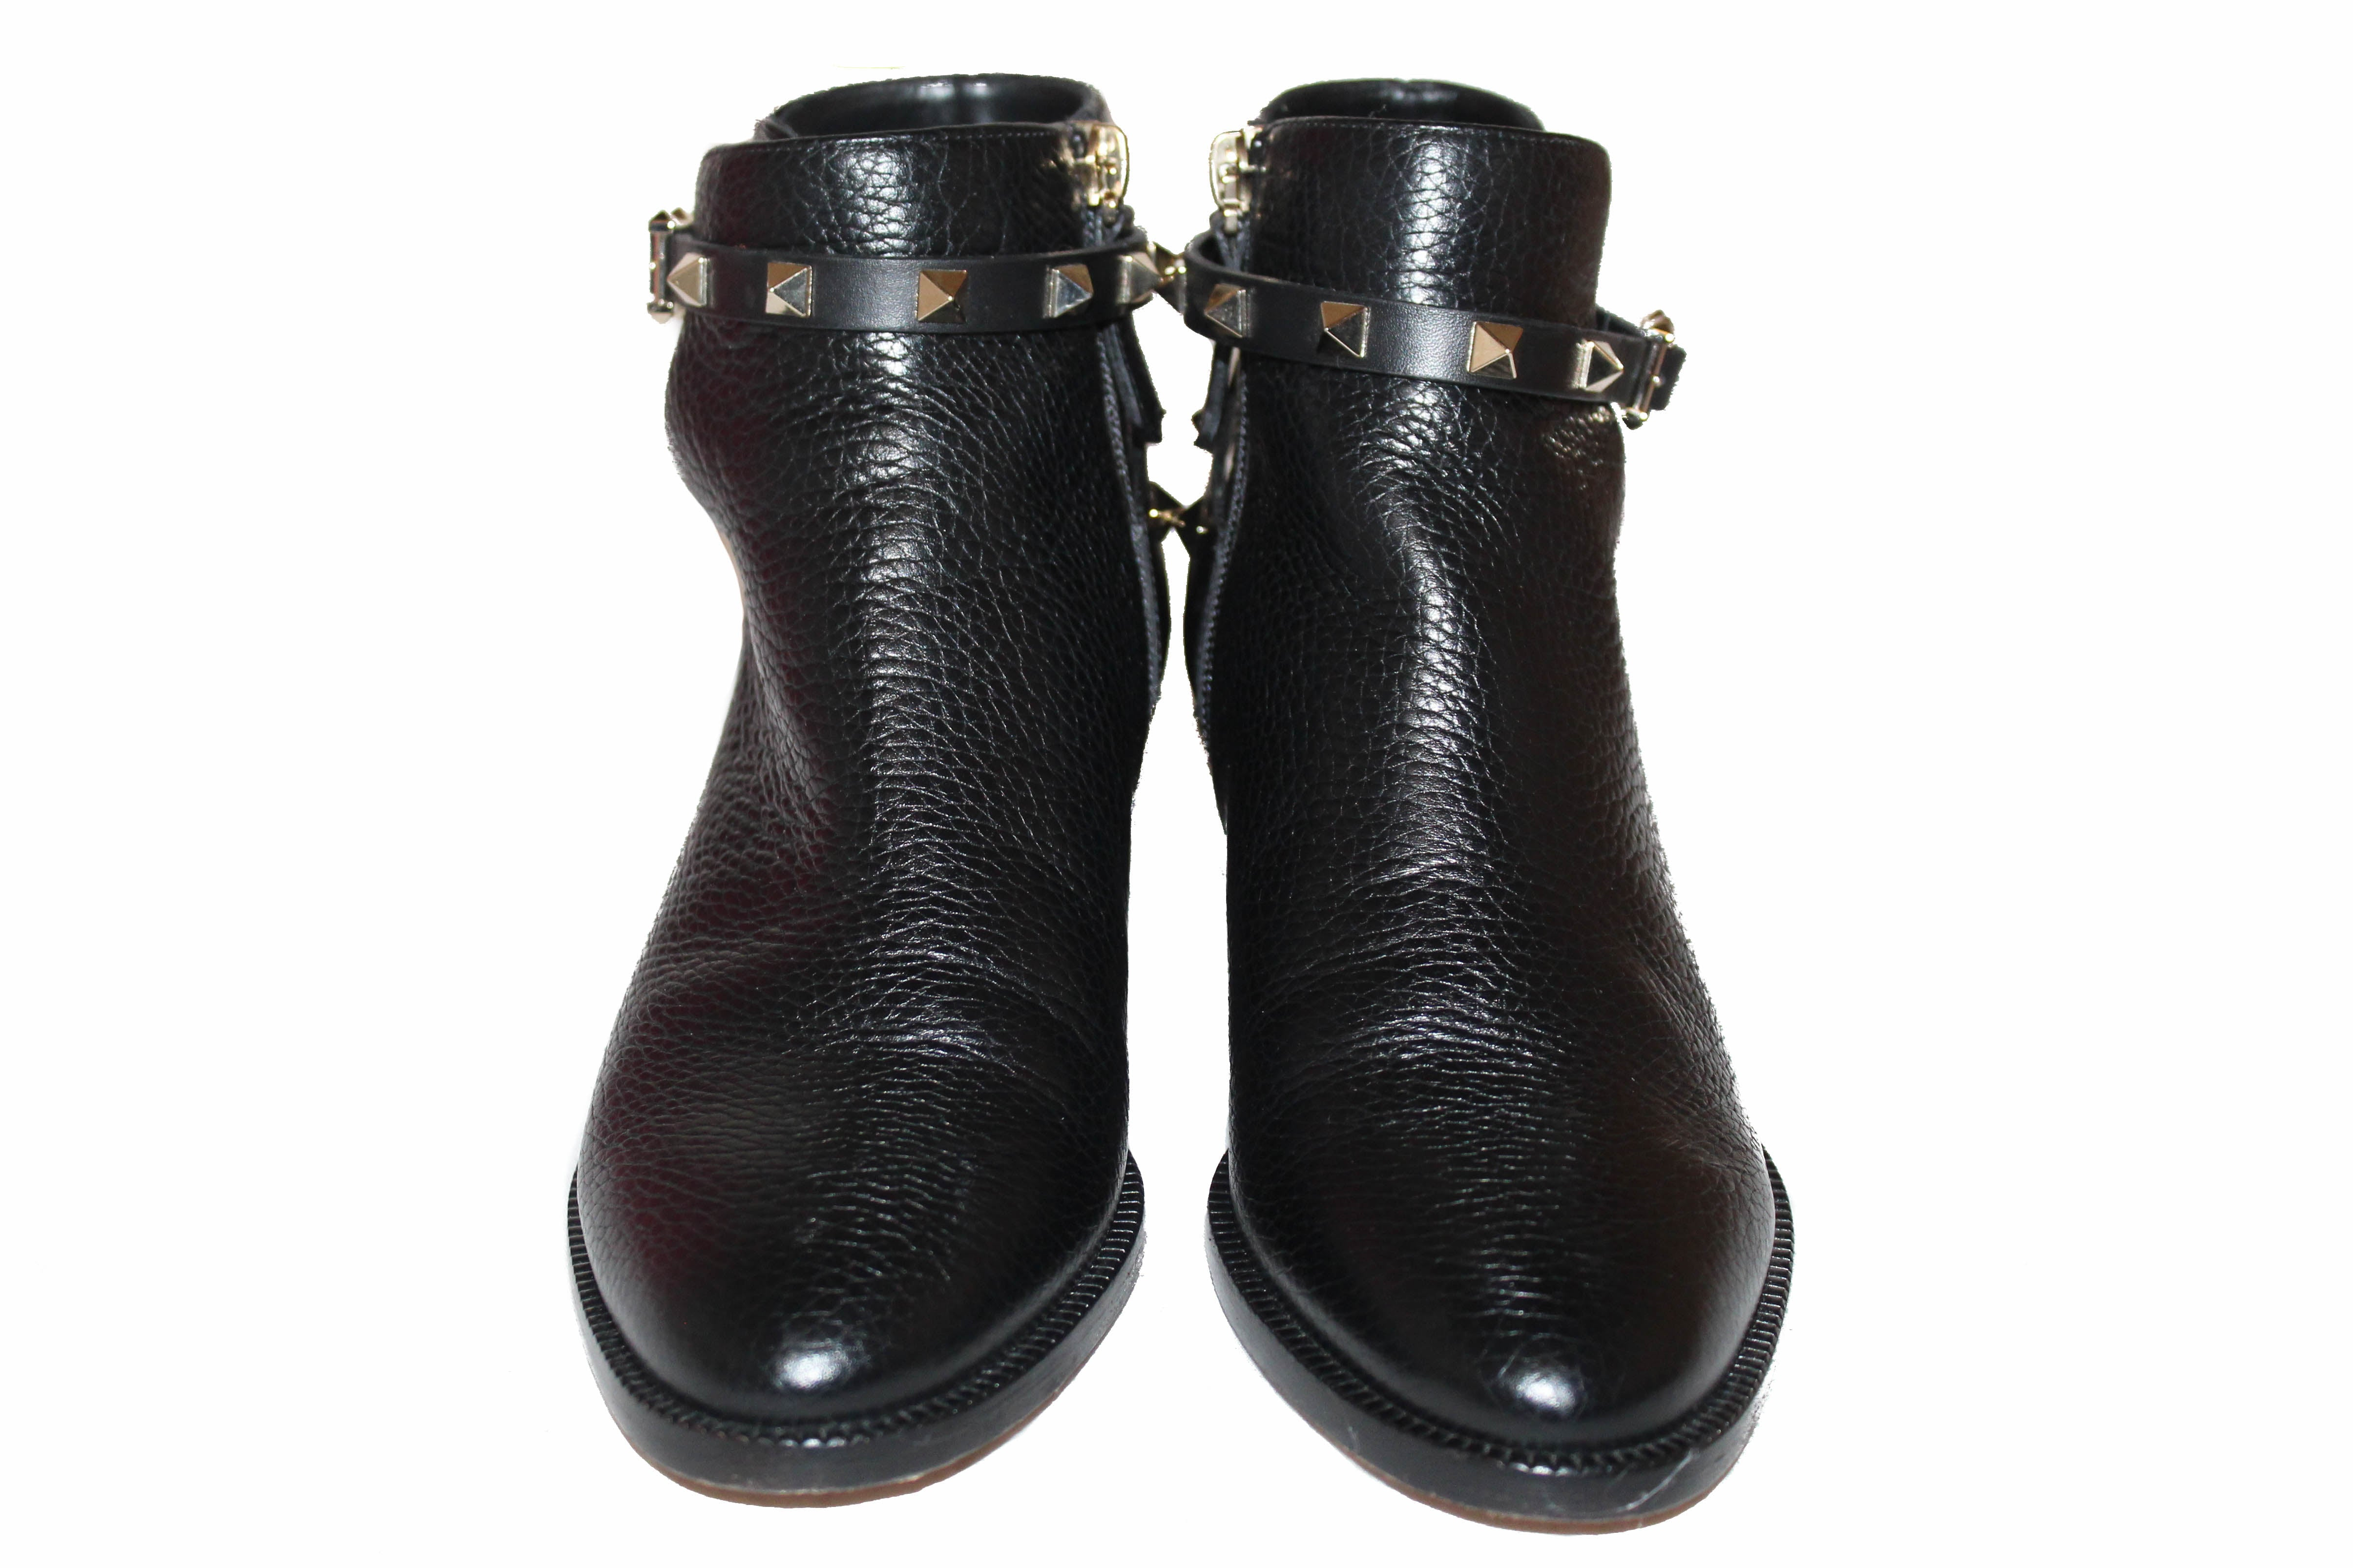 Authentic Valentino Black Leather Rockstud Grainy Calfskin Ankle Boots Shoes Size 36